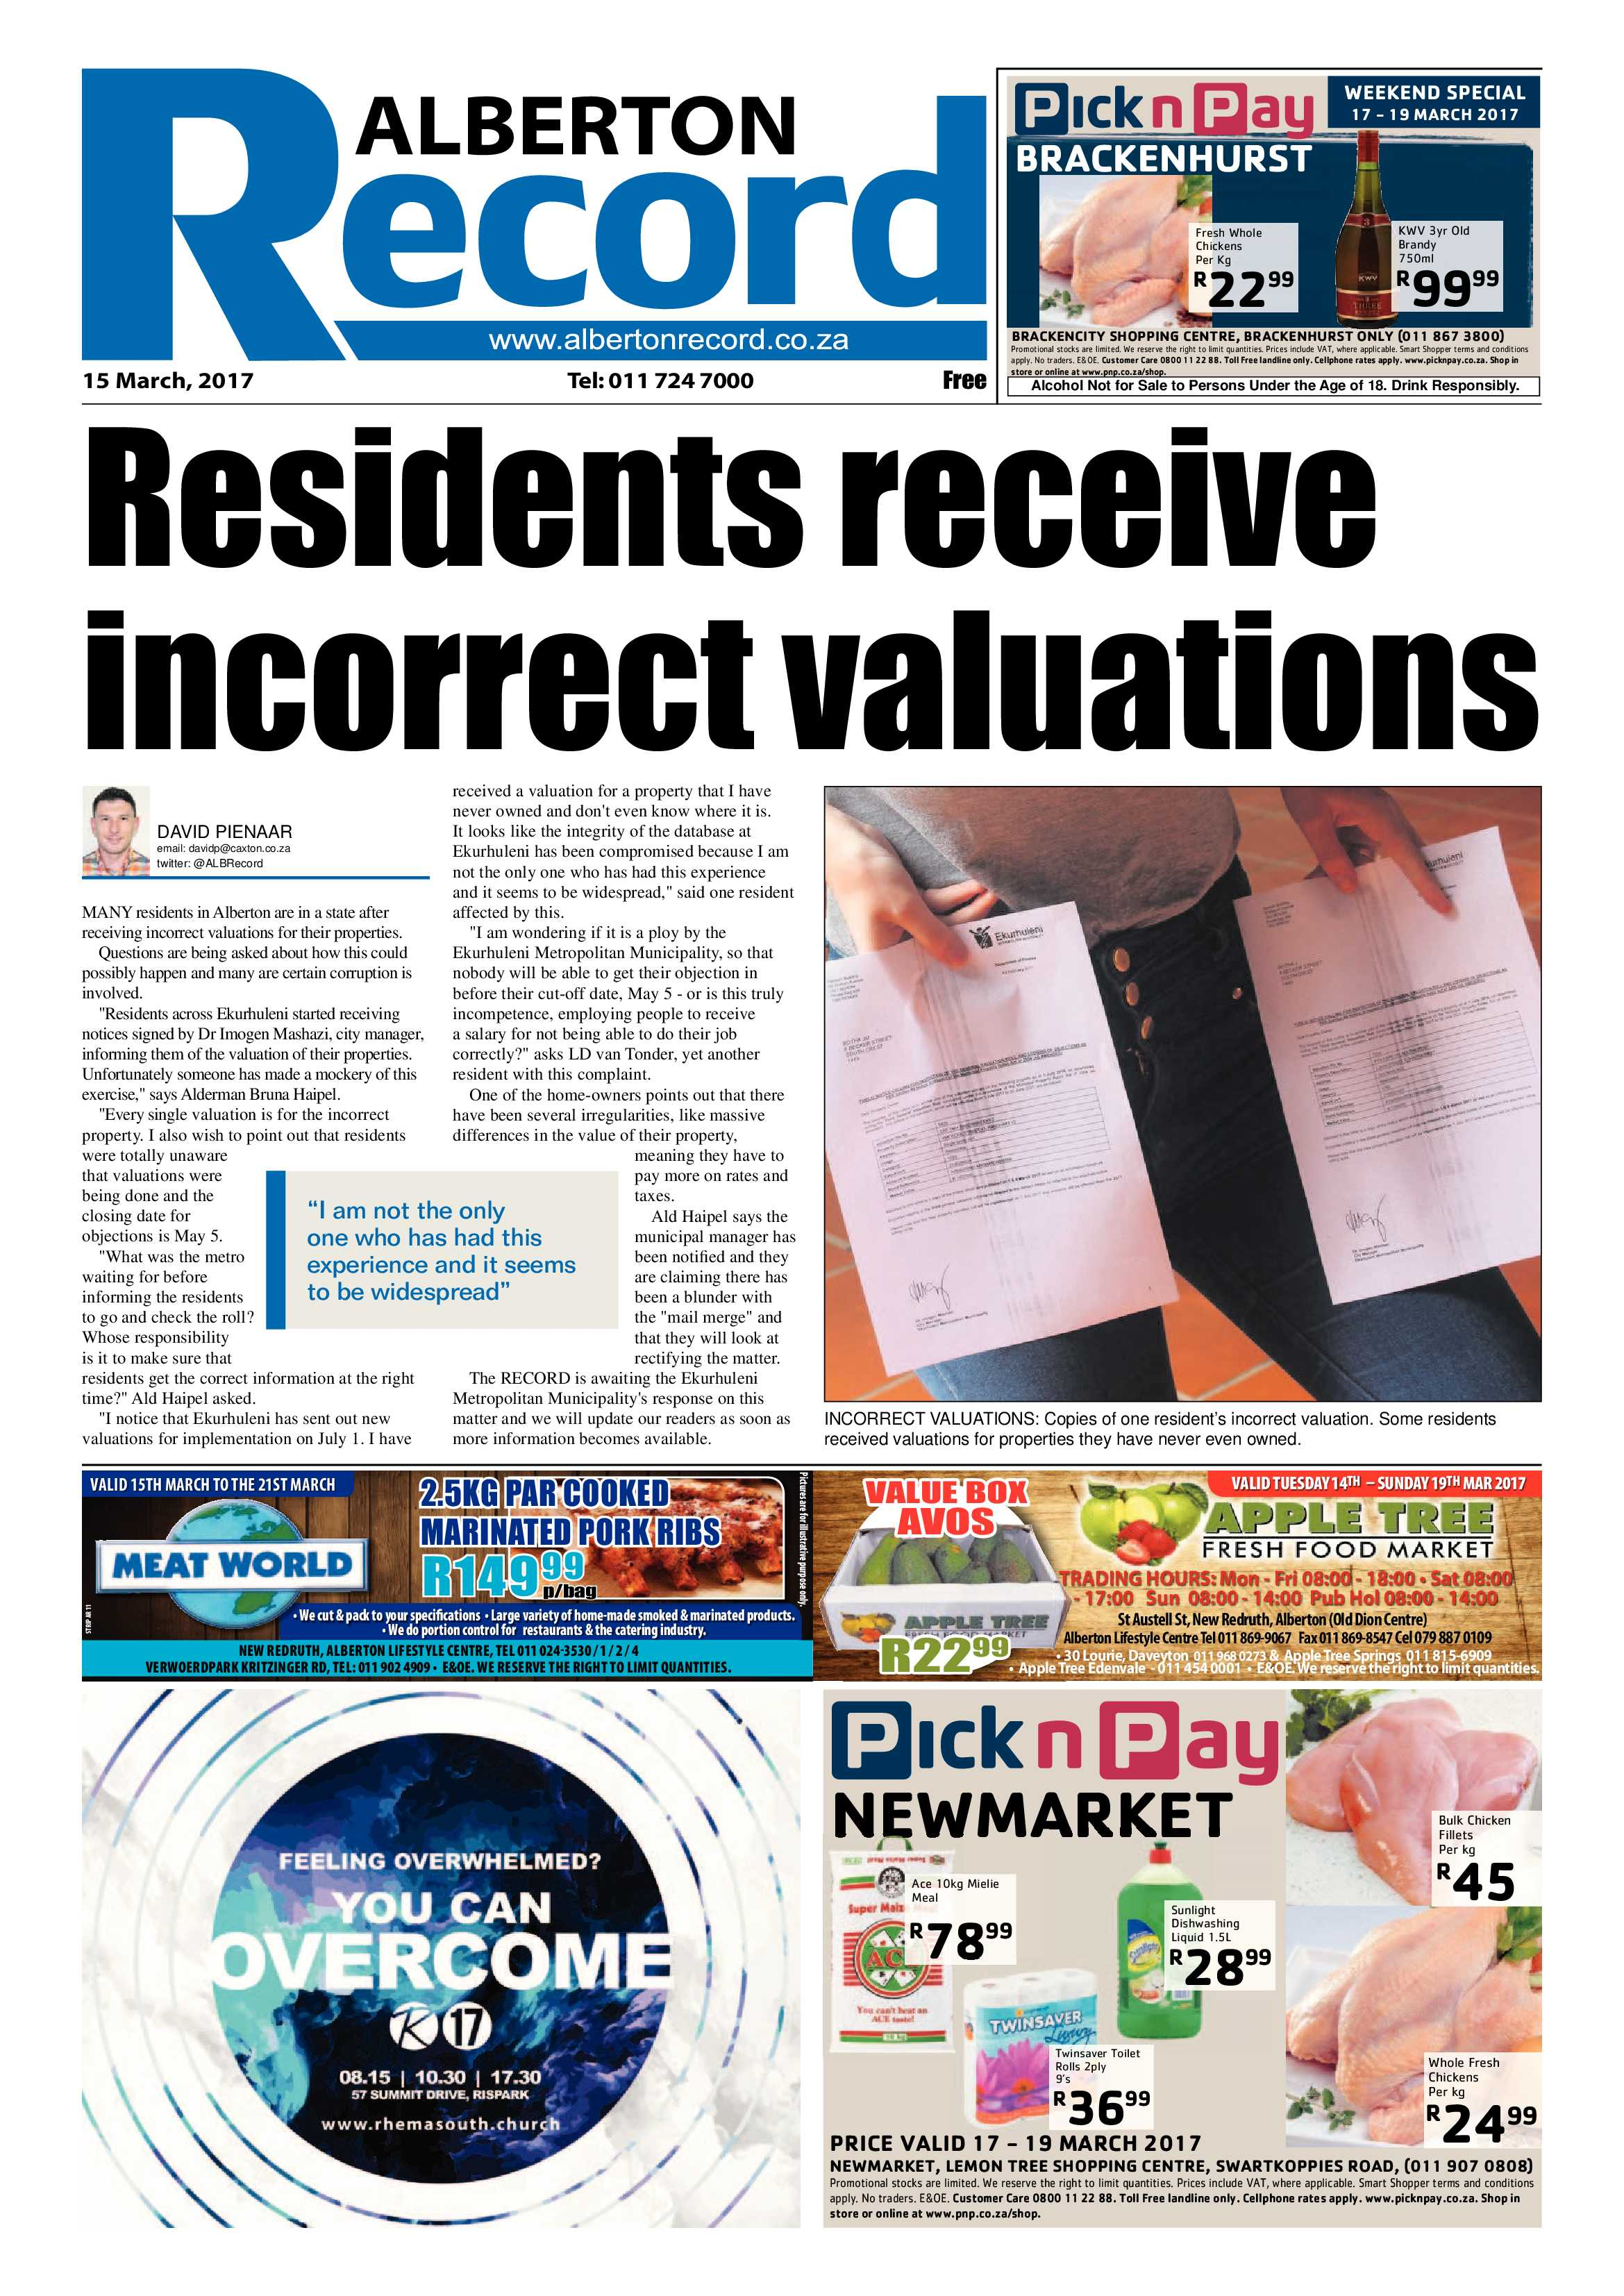 alberton-record-15-march-2017-epapers-page-1